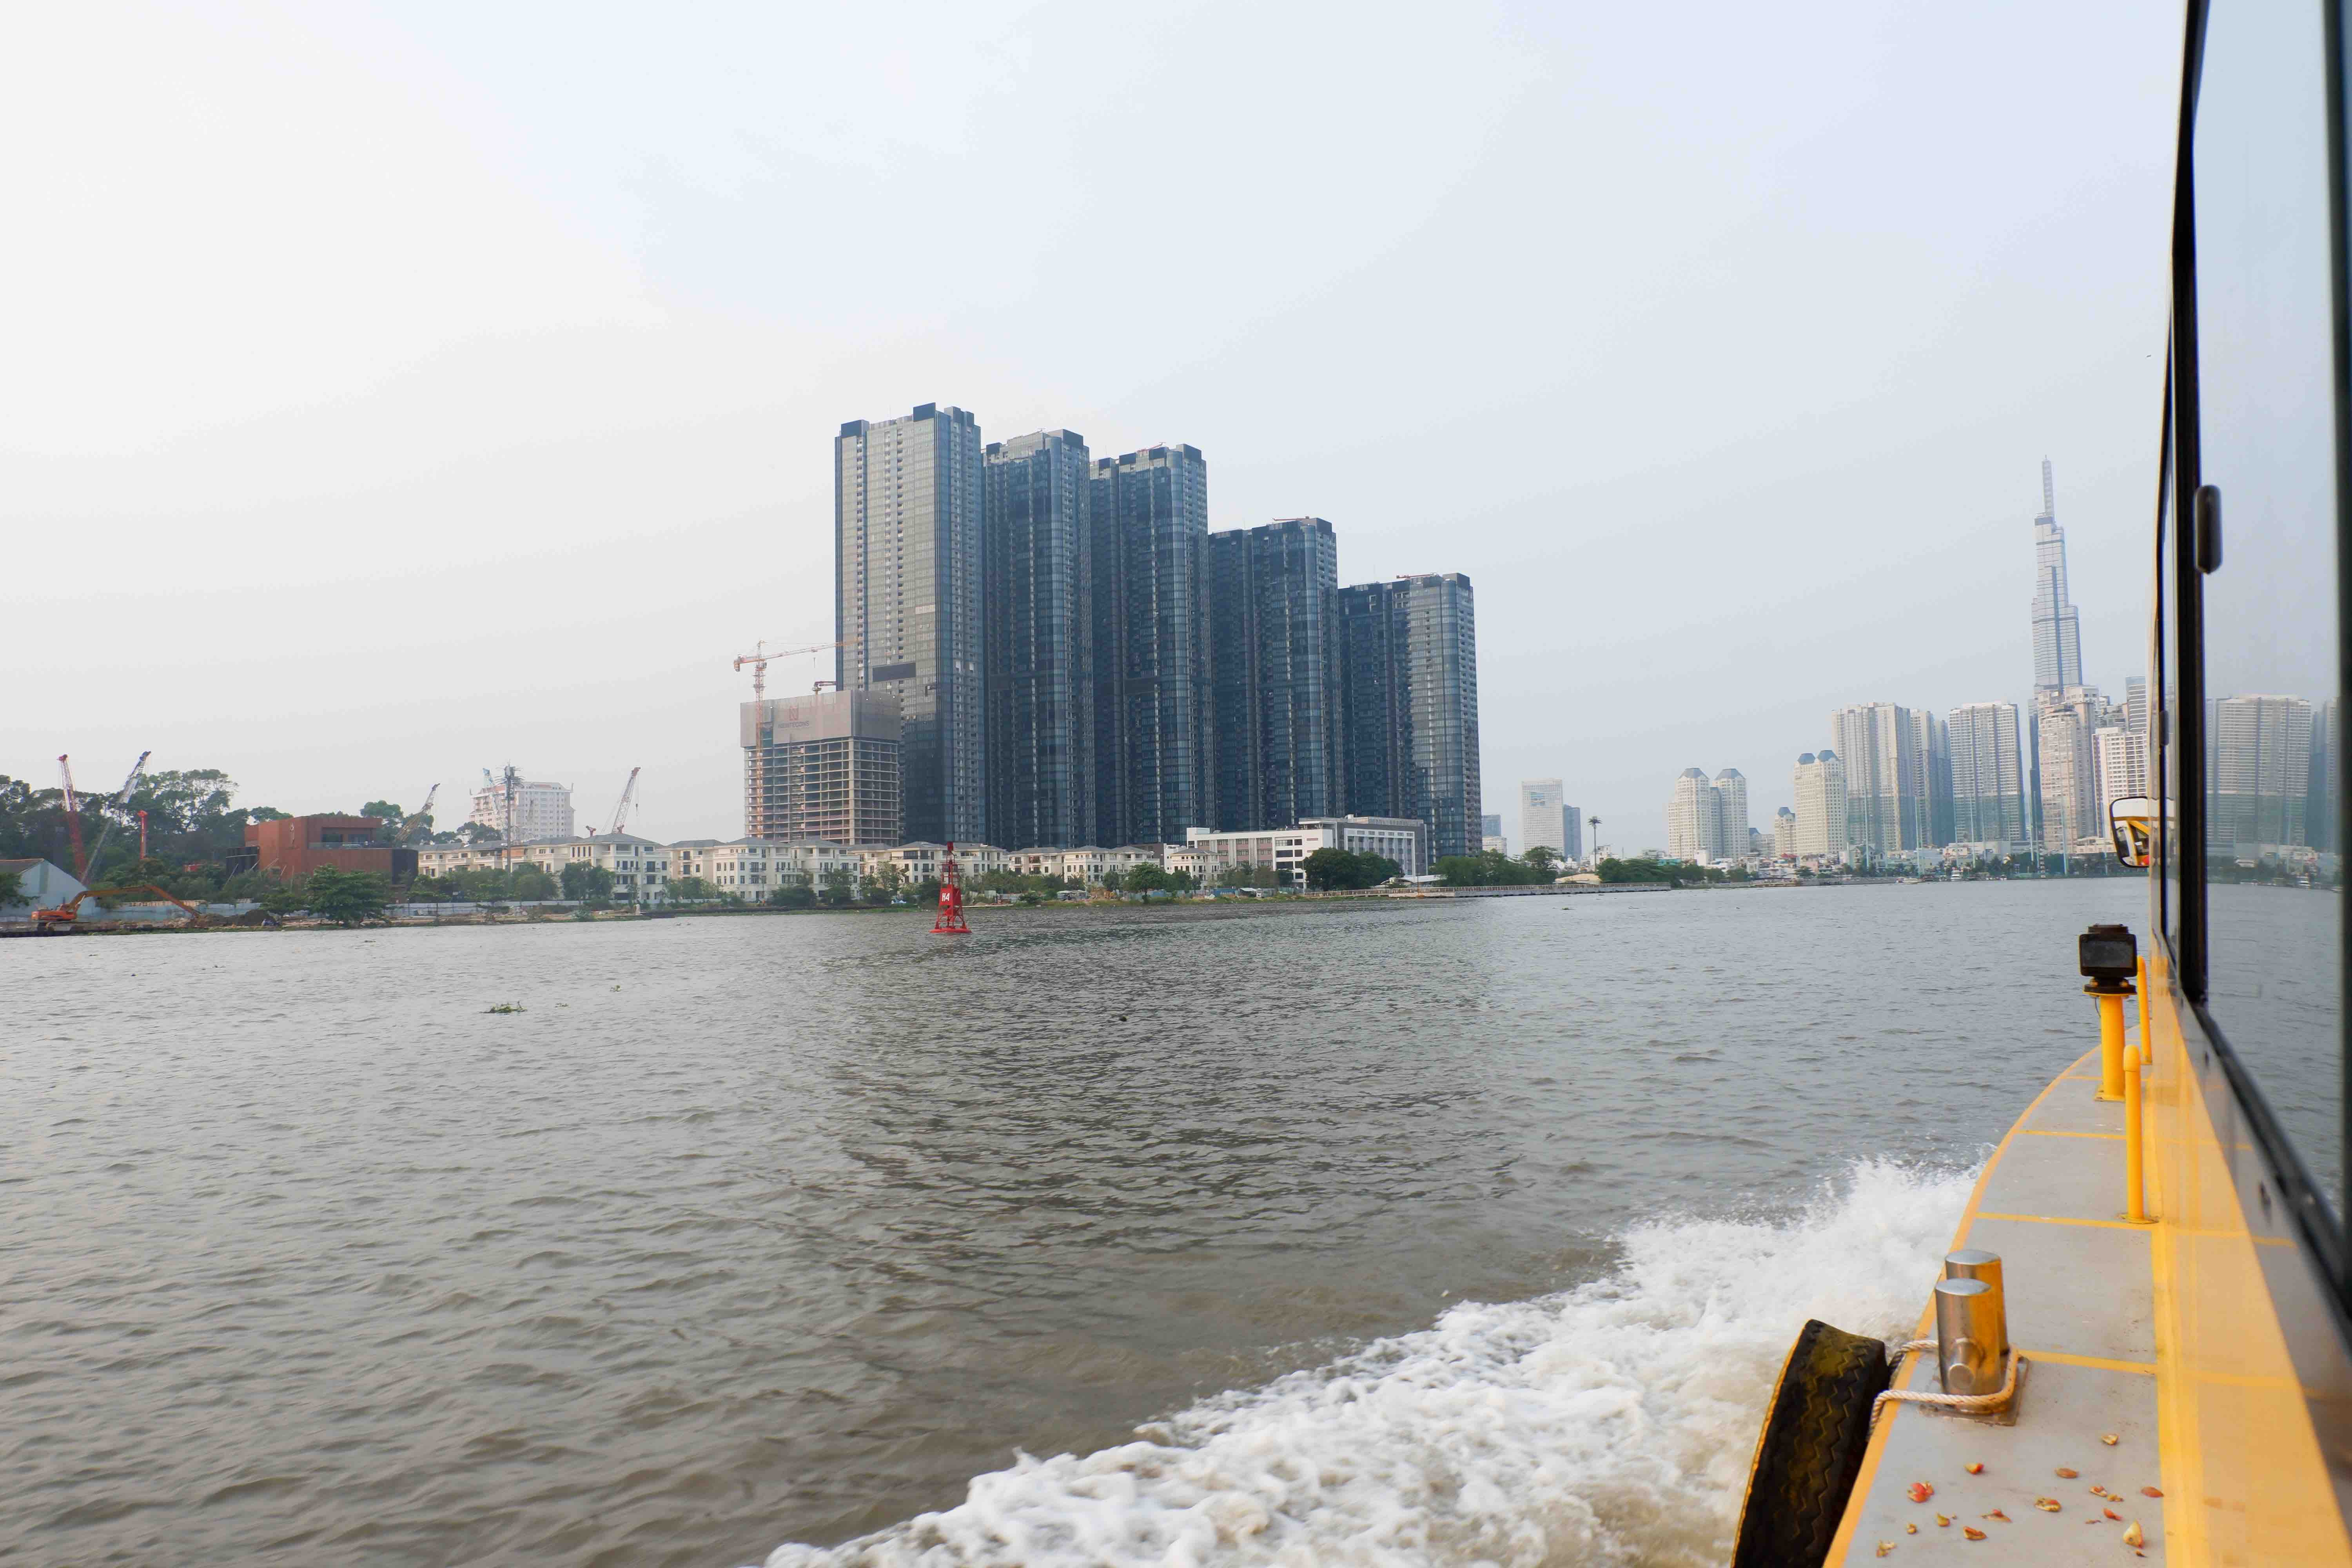 A lots of famous skyscrapers in Ho Chi Minh City can be seen from waterbus windows. Photo: Linh To / Tuoi Tre